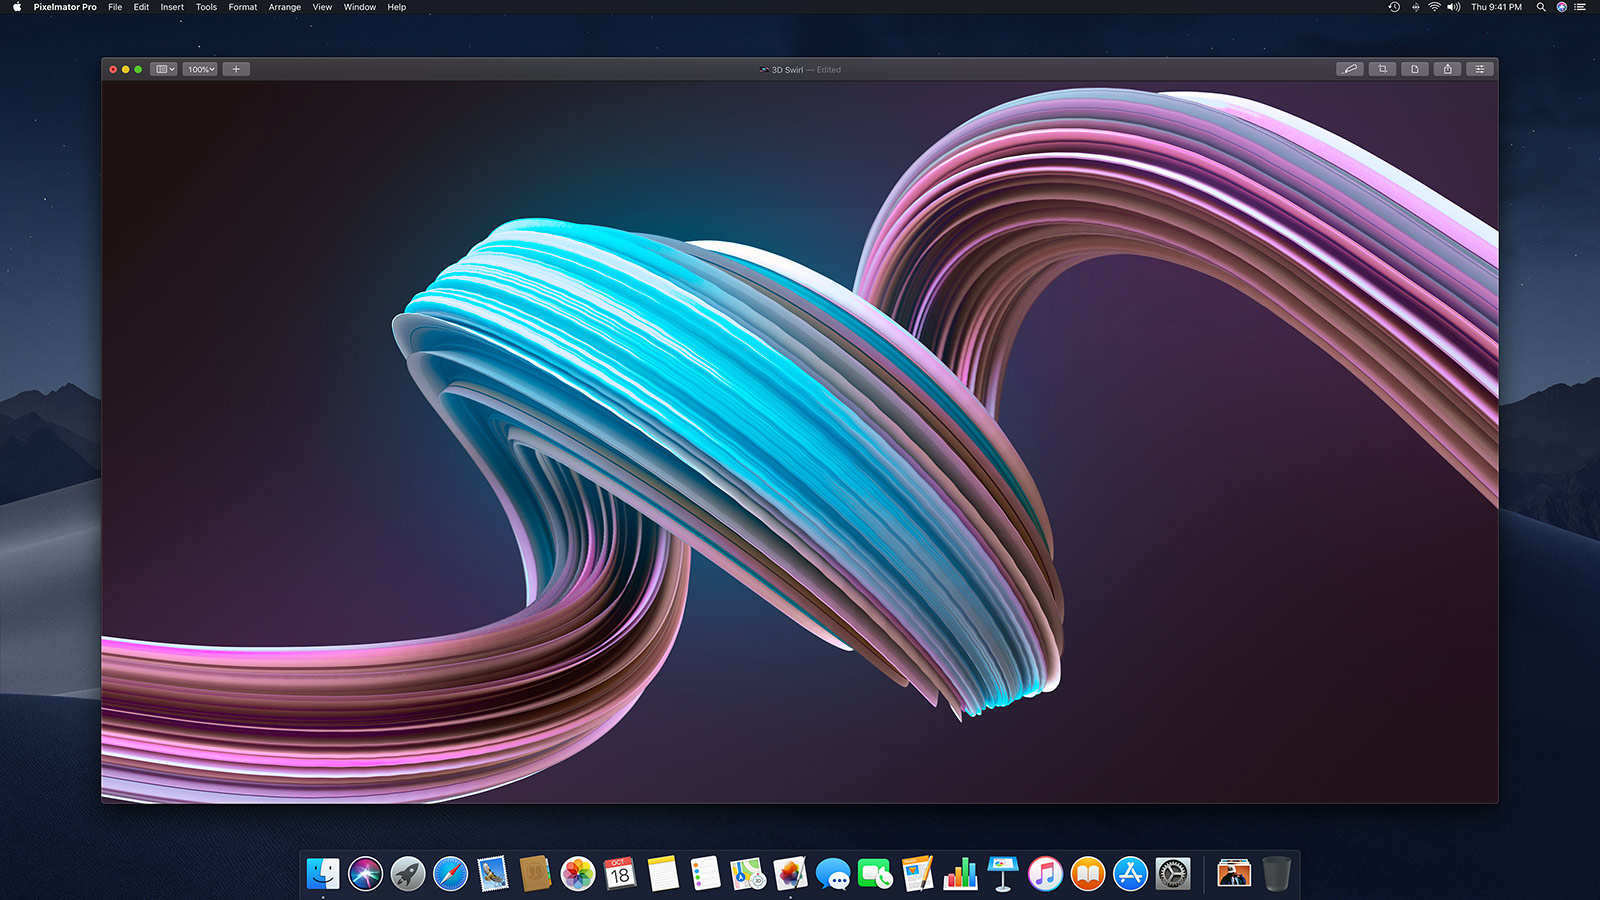 Pixelmator Pro Circuit Design Suite You Can Create Multiple Layers And Arrange The With A That Is Totally Completely Mac It Feels Instantly Familiar From Moment First Open App So Image Editing Becomes Simpler